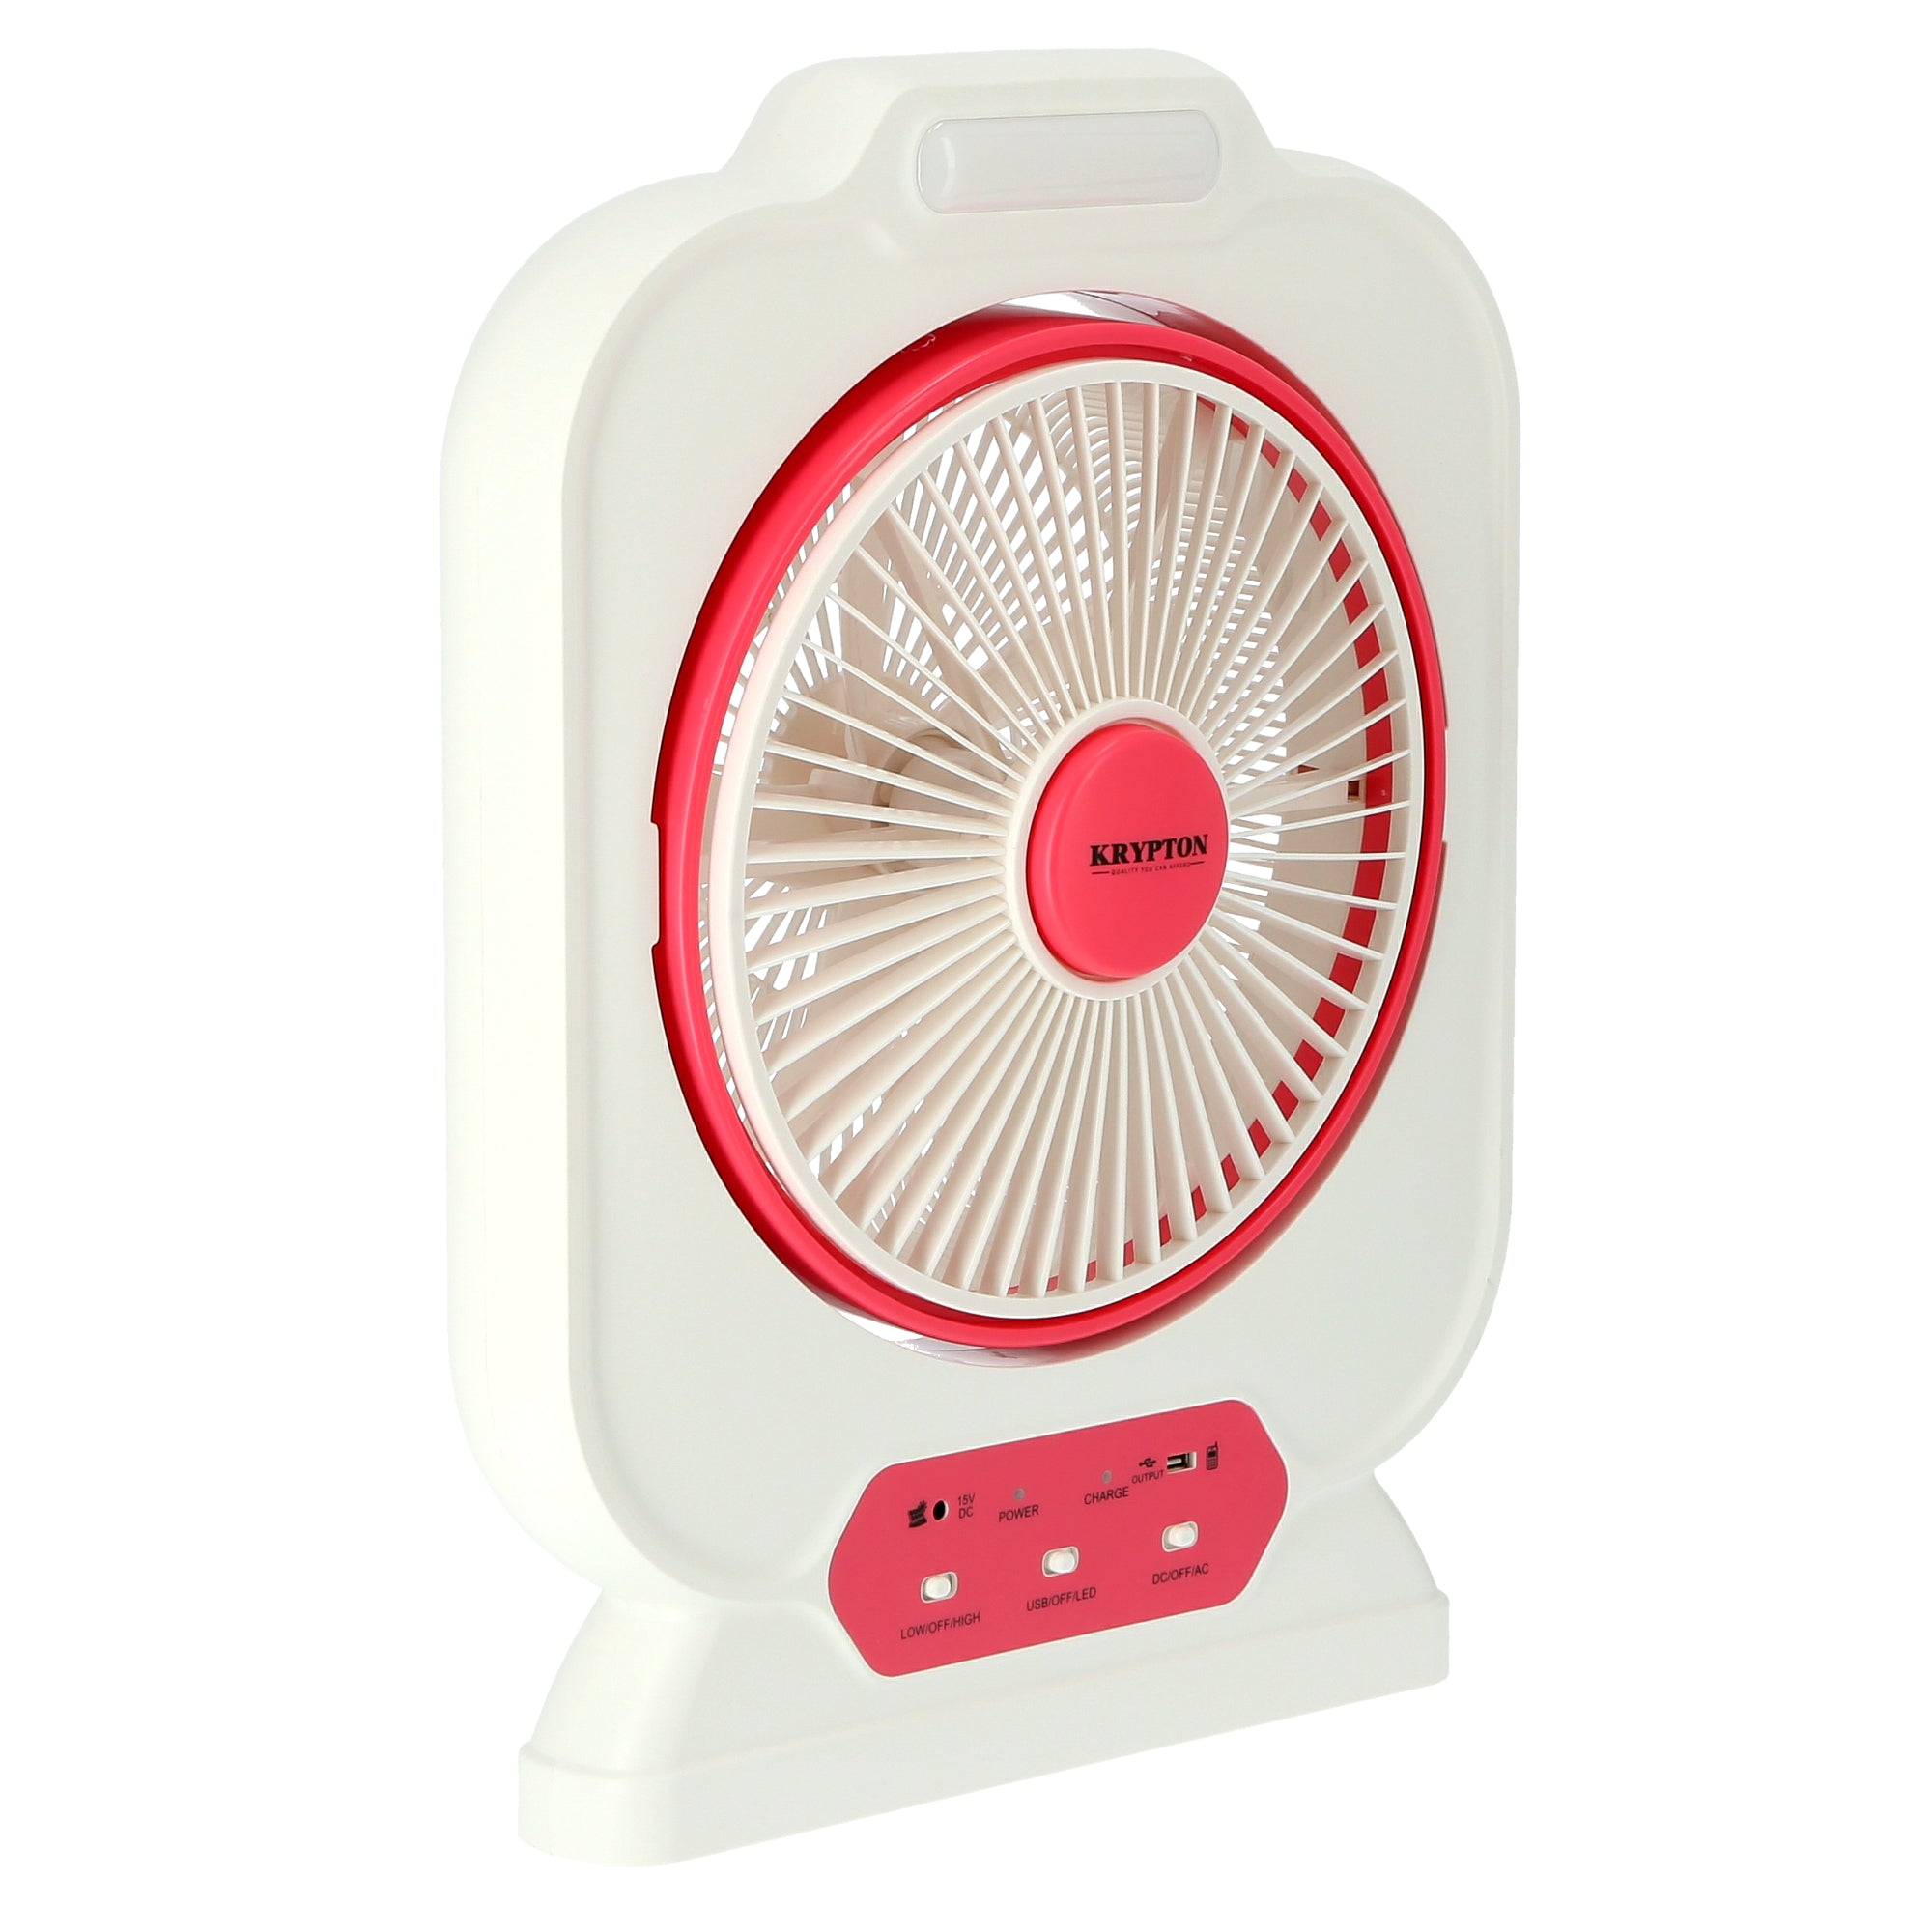 12'' Rechargeable Box Fan - Personal Desk Fan with - Personal Desk Fan with LED Night Light - Electric USB Fan for Office, Home & Travel Use - 10 Hours Working